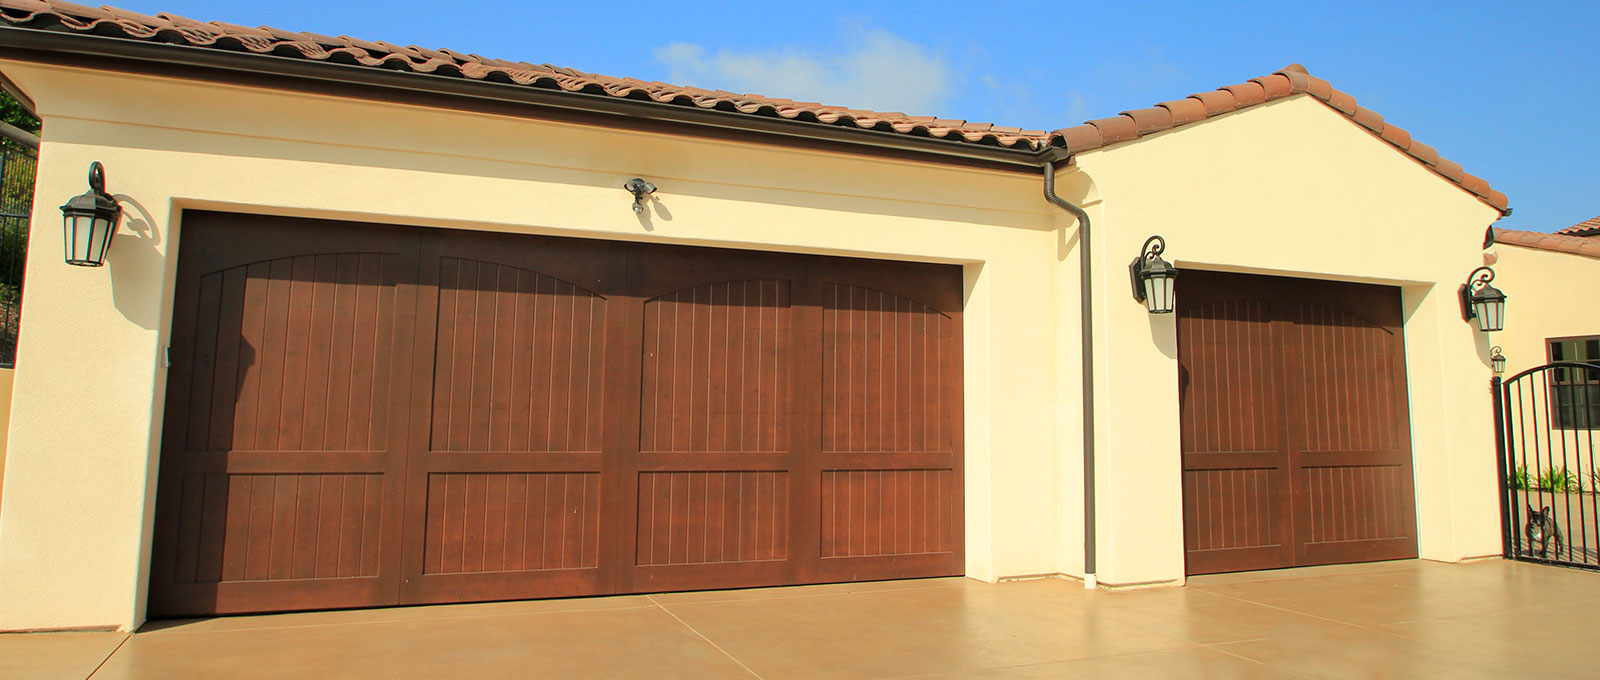 Stain Grade Custom Garage Doors